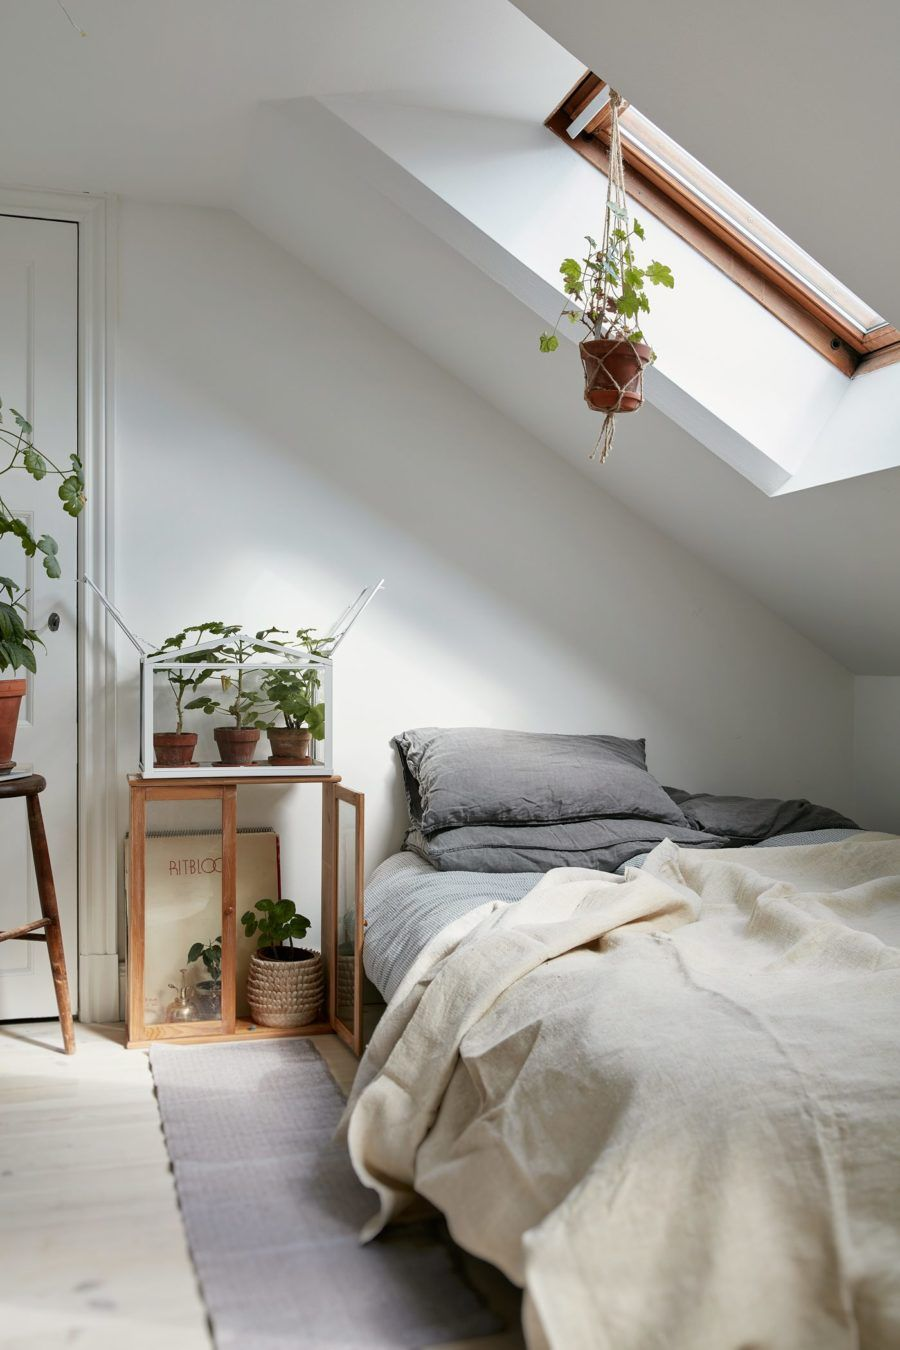 Simple And Minimal Bedroom With White Walls, Indoor Plants And Grey Accents